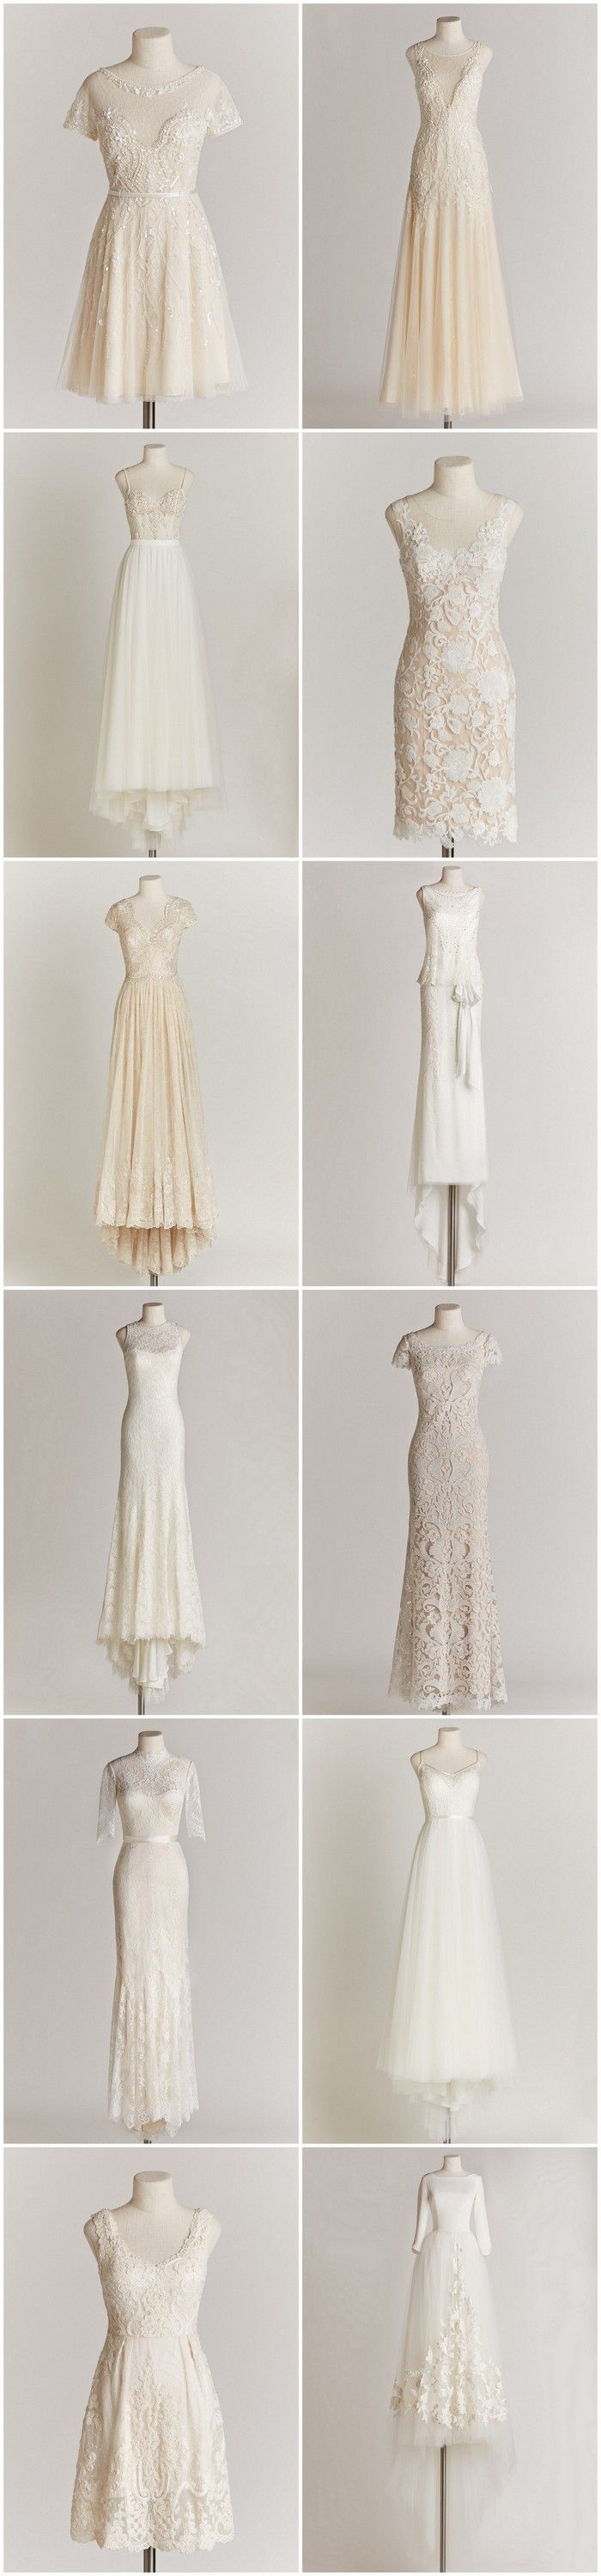 Chic Sophisticated Wedding Dresses for the Refined Romantic: http://www.confettidaydreams.com/chic-sophisticated-wedding-dresses/